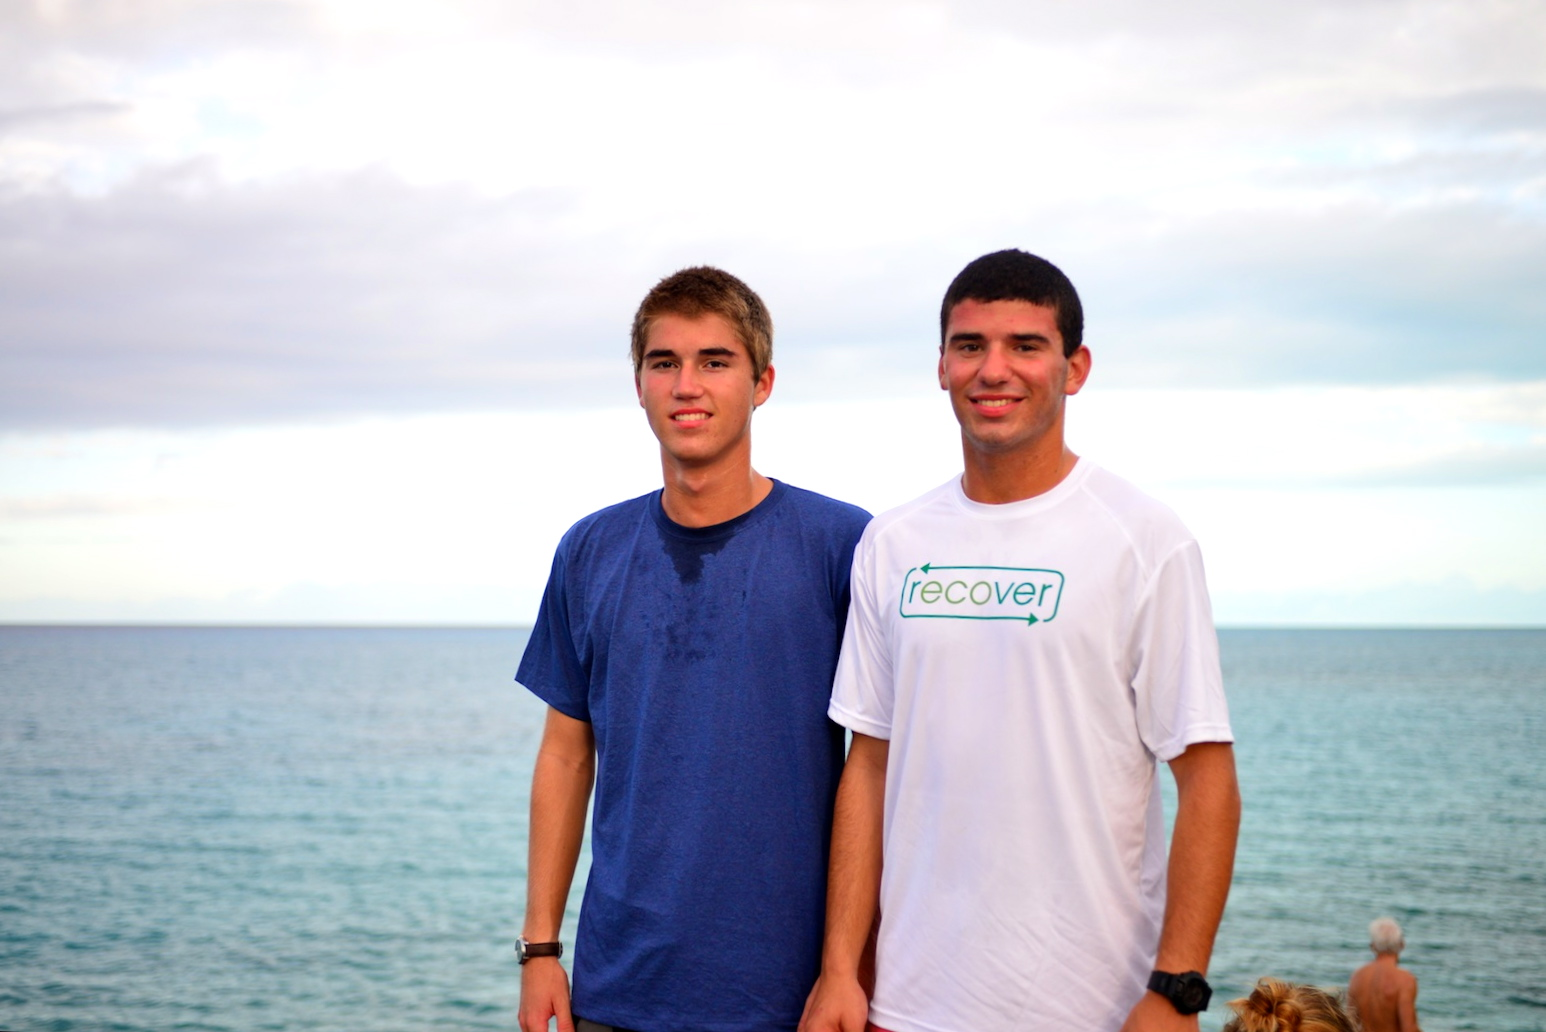 Ryan Schendel and Jake Varsano (F'12) put the Recover Brand t-shirts to the test by wearing them during morning exercise.